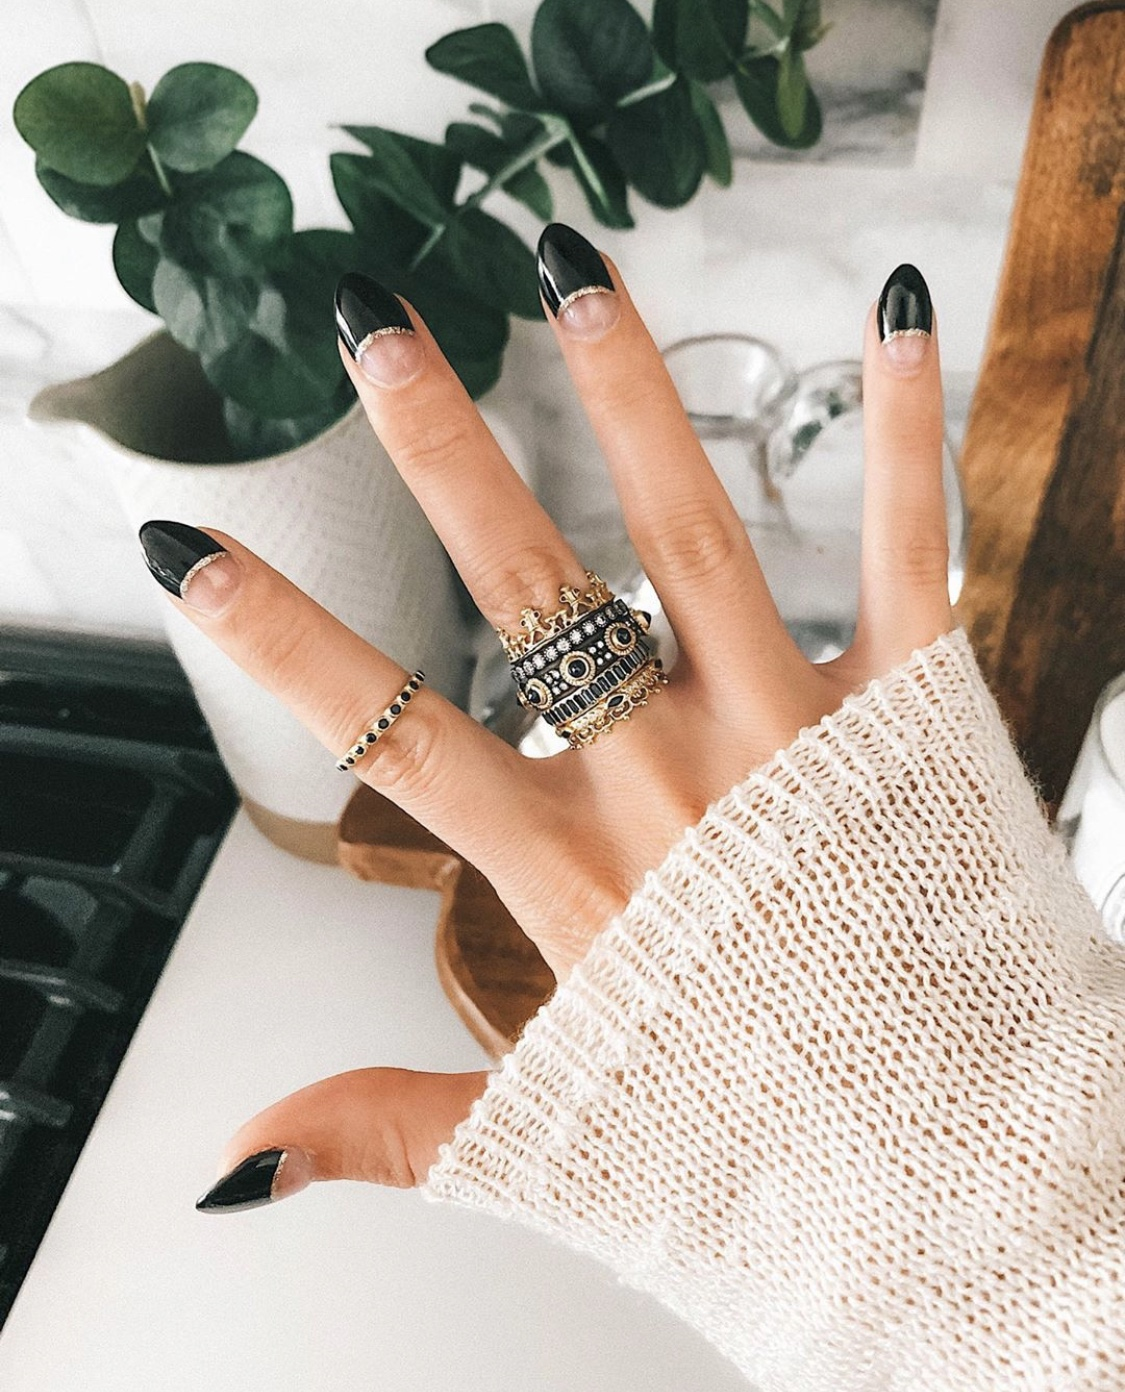 Nail Art Designs by popular Austin beauty blog, Dressed to Kill: image of a woman with black, gold and clear nail art.